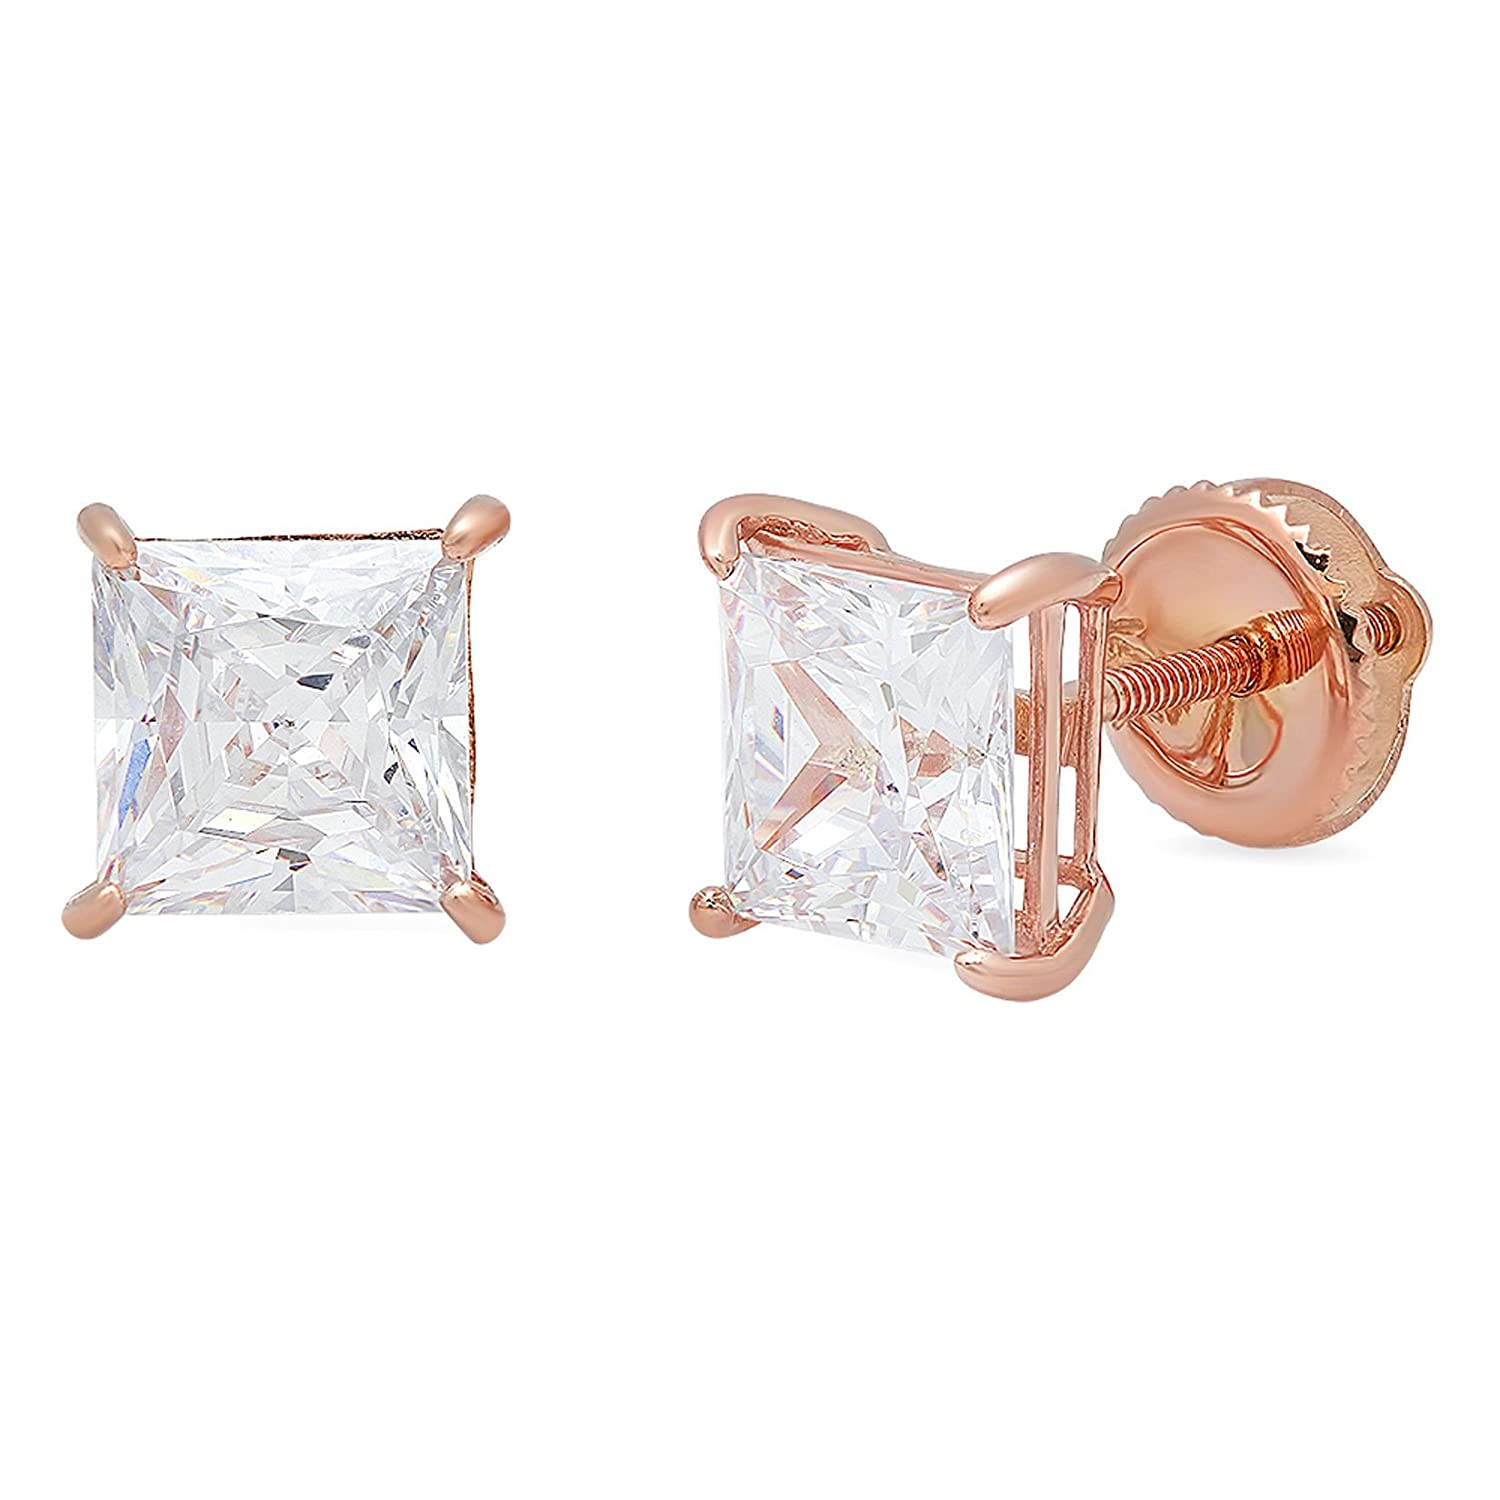 Clara Pucci 2.90 CT Princess Brilliant Cut Solitaire Stud Earrings in 14k Rose Gold Screw Back